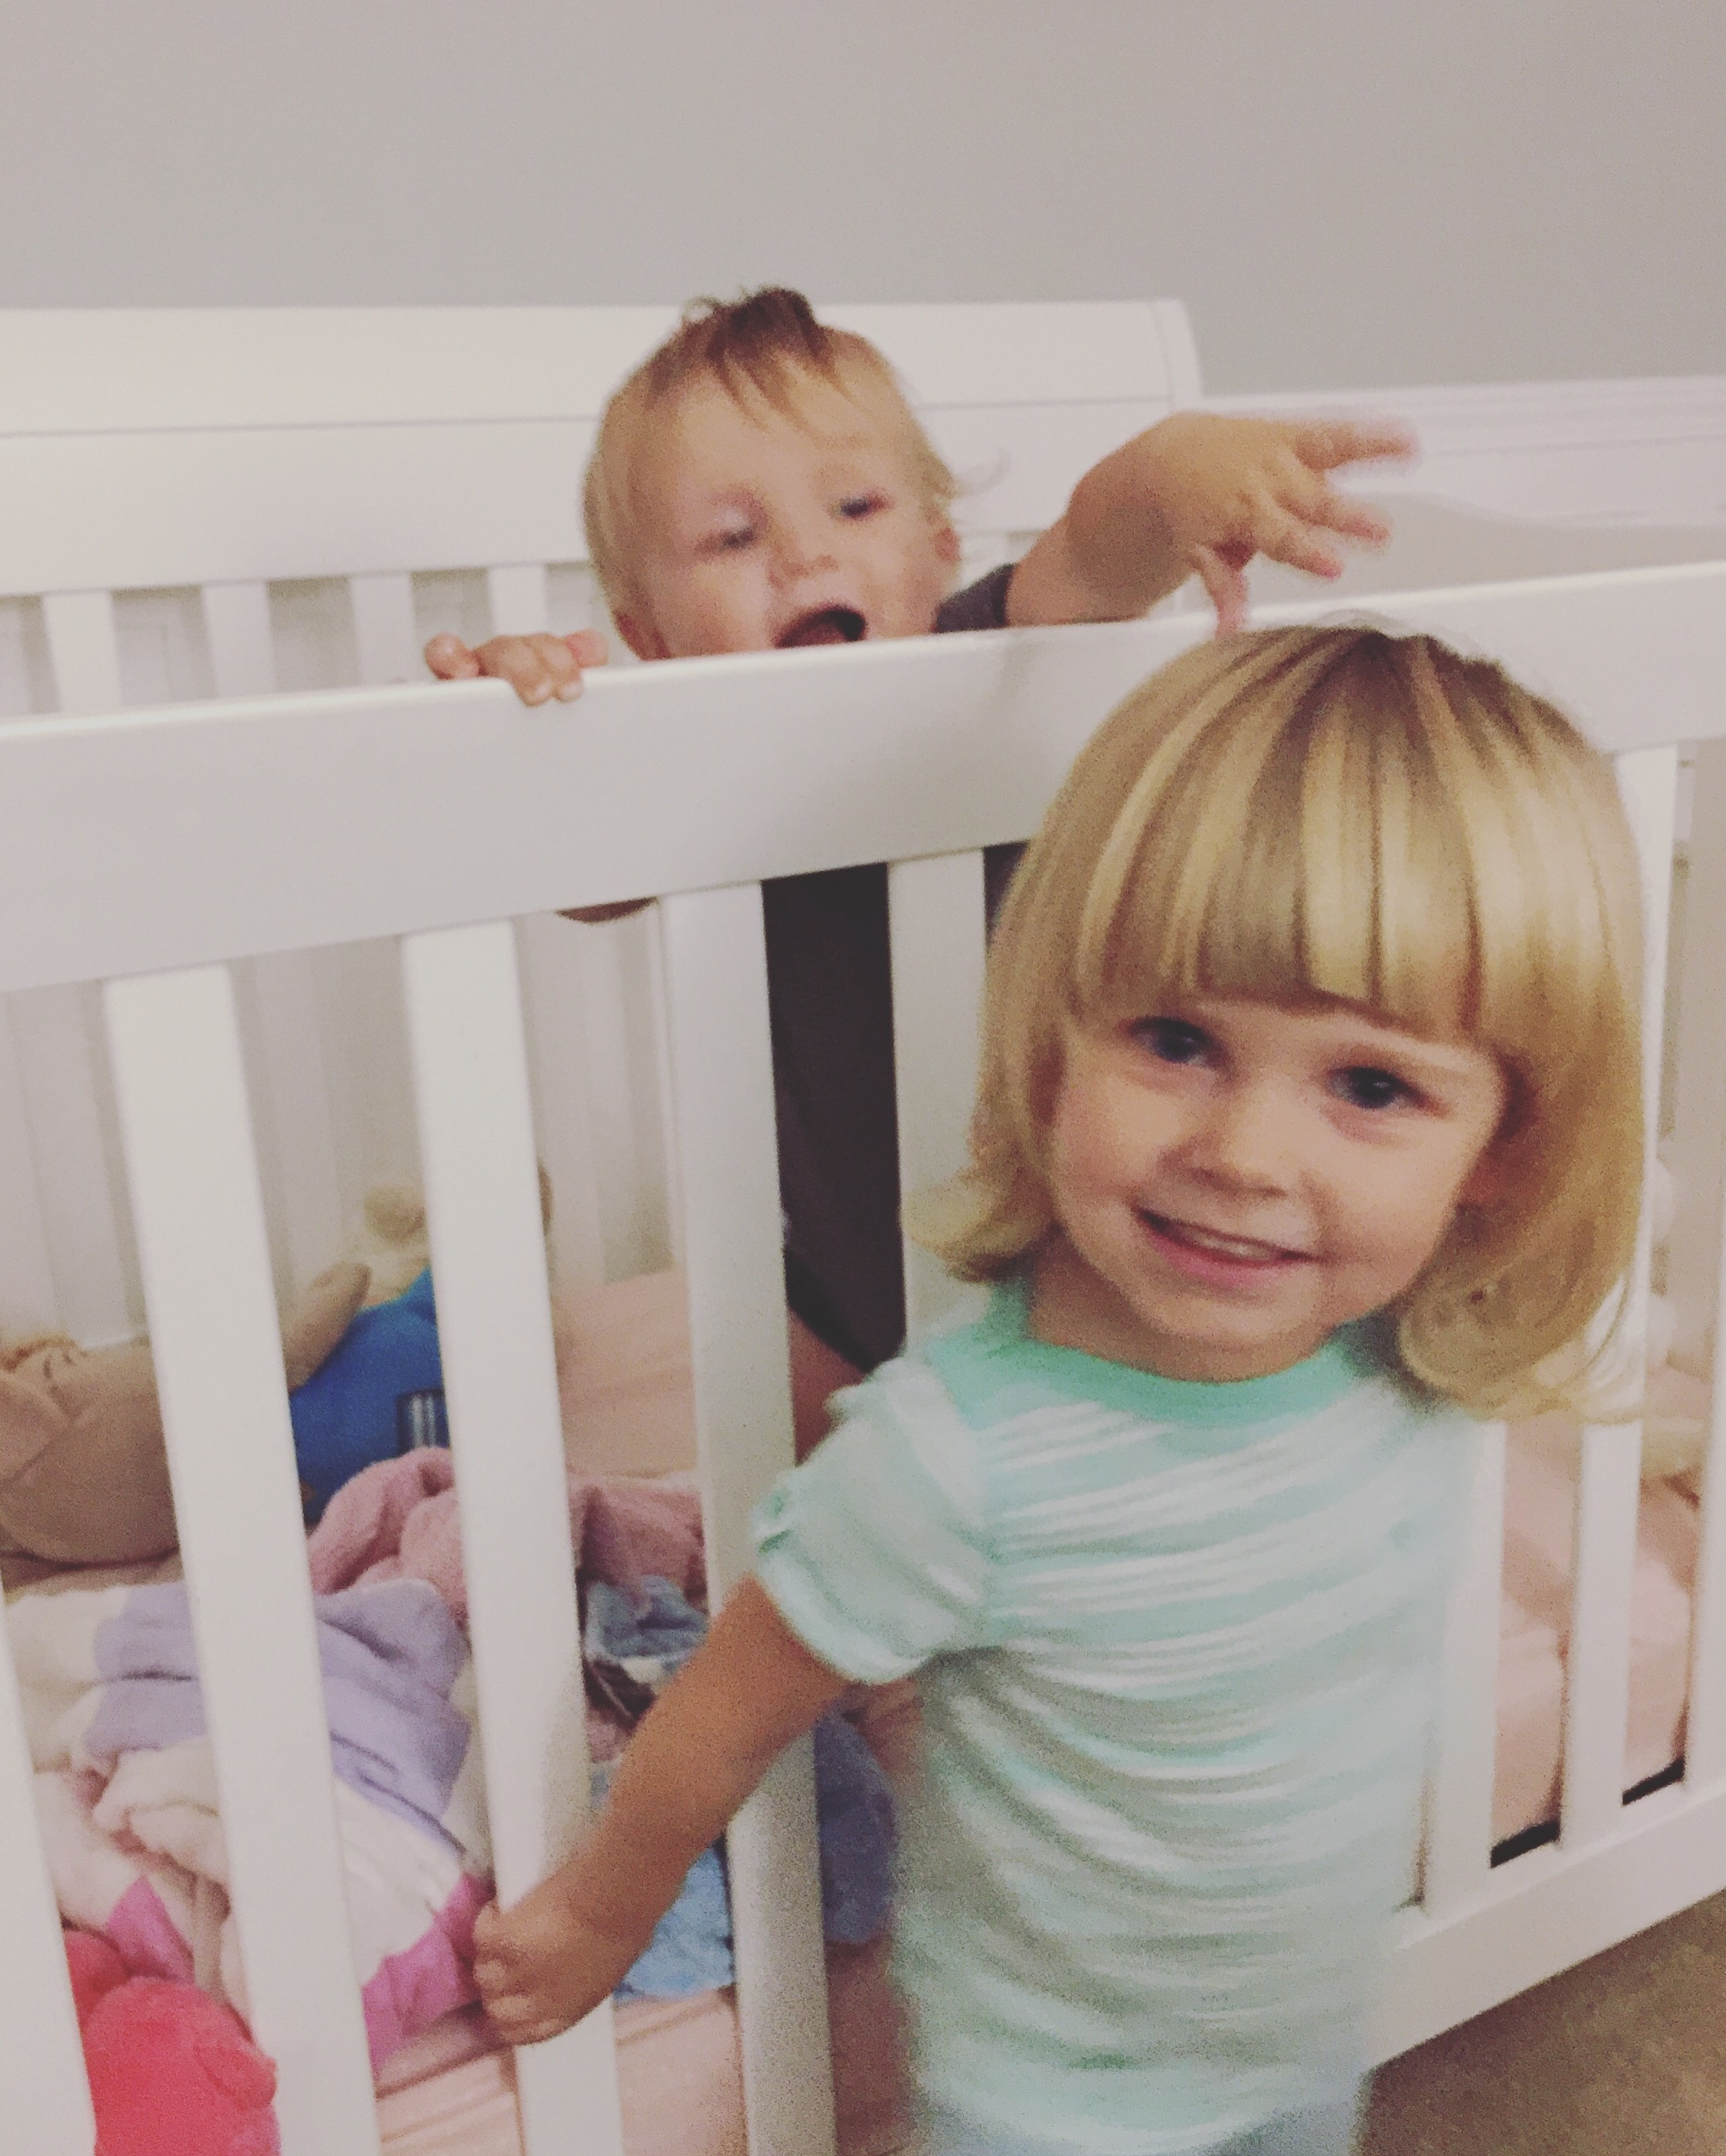 Two kiddos being crazy in a crib